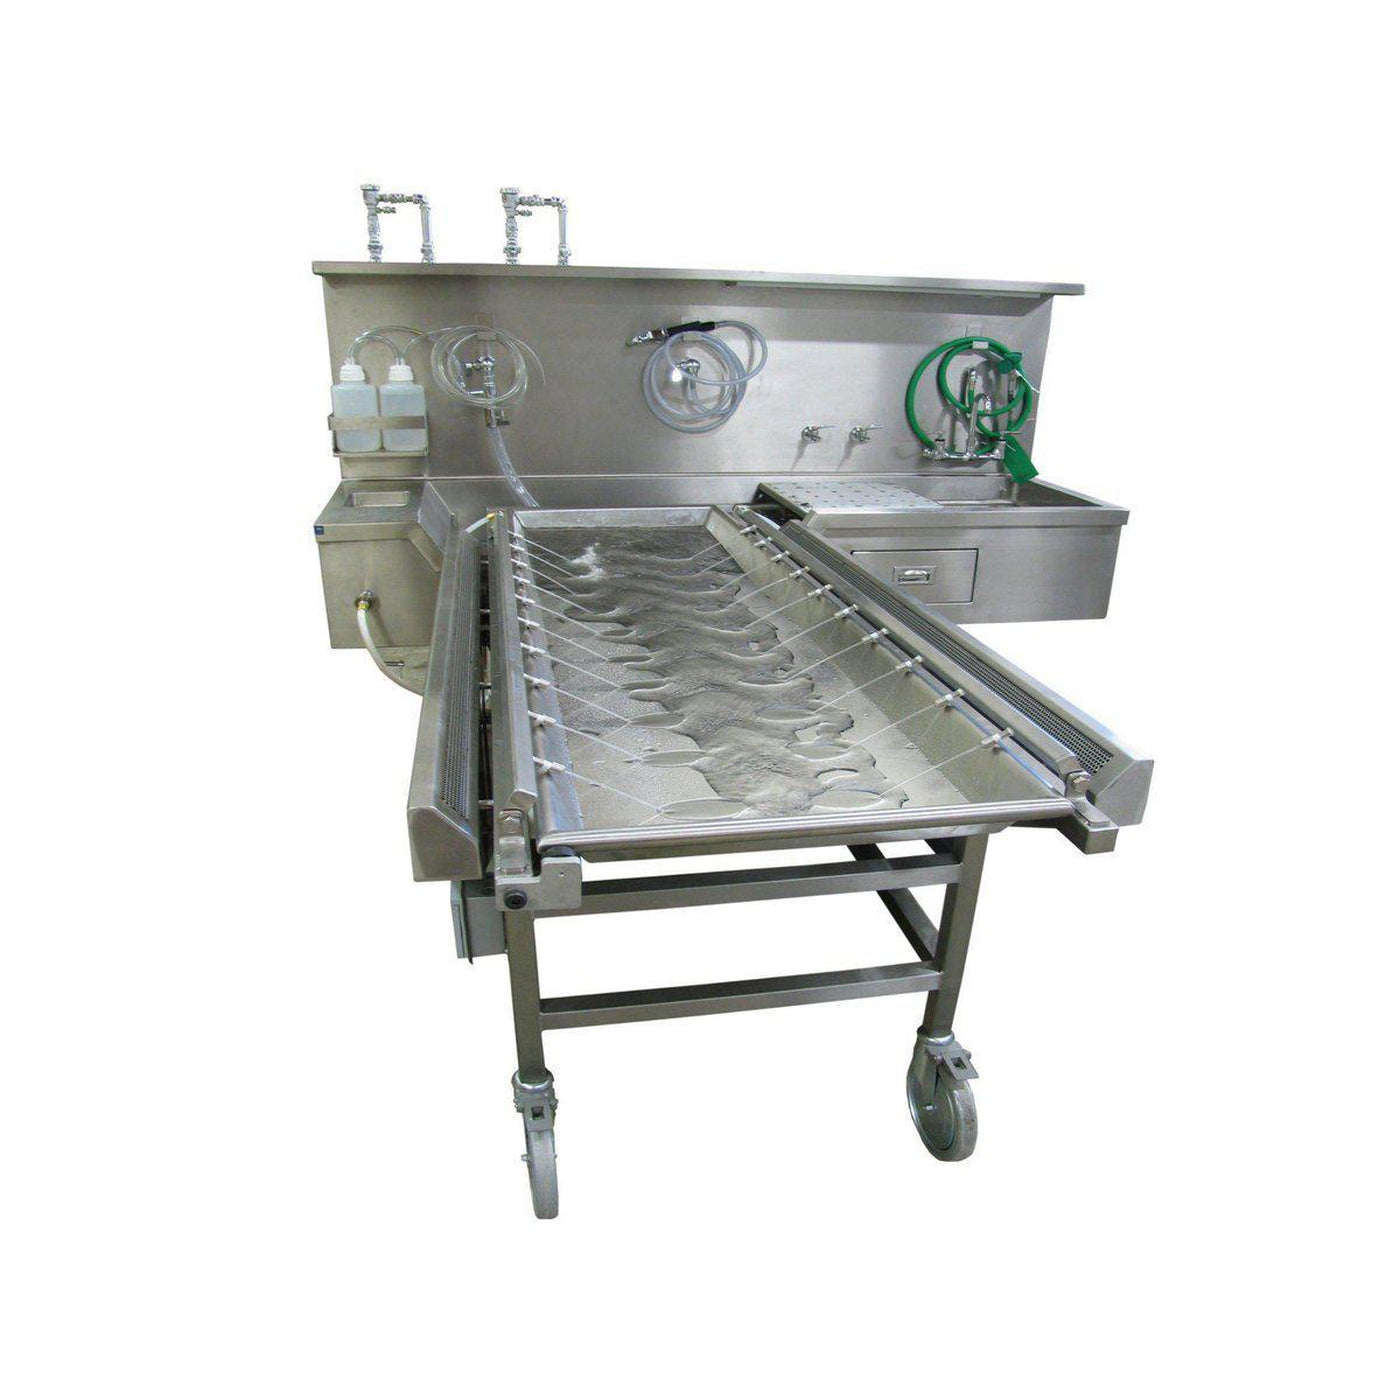 Ventilated Embalming Station-Sink Station-Mortech Manufacturing Company Inc. Quality Stainless Steel Autopsy, Morgue, Funeral Home, Necropsy, Veterinary / Anatomy, Dissection Equipment and Accessories